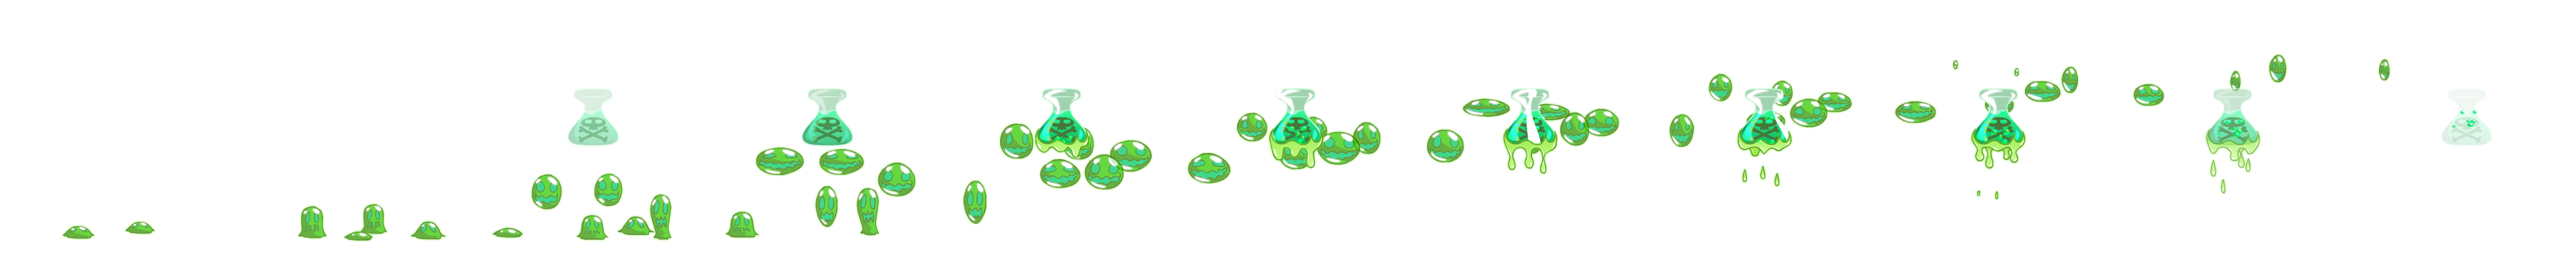 https://images.neopets.com/dome/statuses/poisoned-11-262kb.png